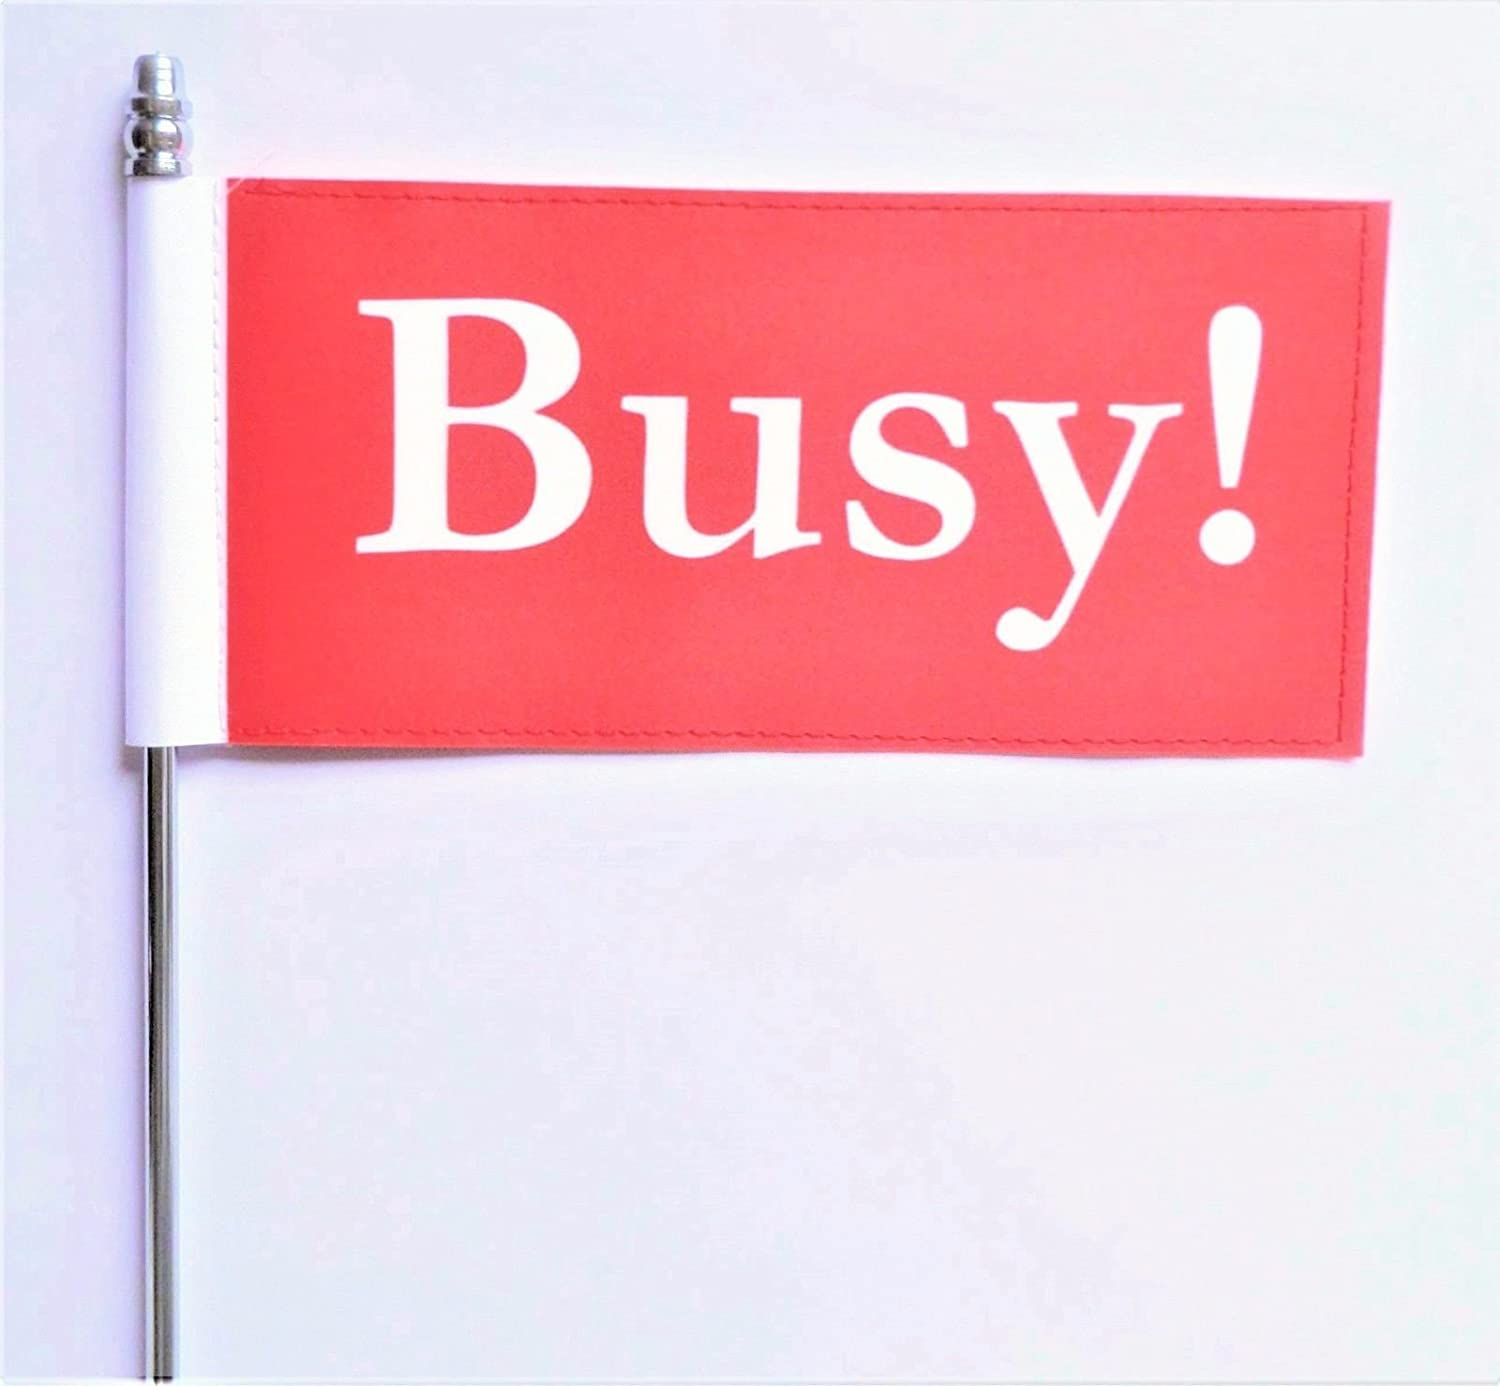 Busy ! Red Office Desk Workplace Ultimate Table Flag